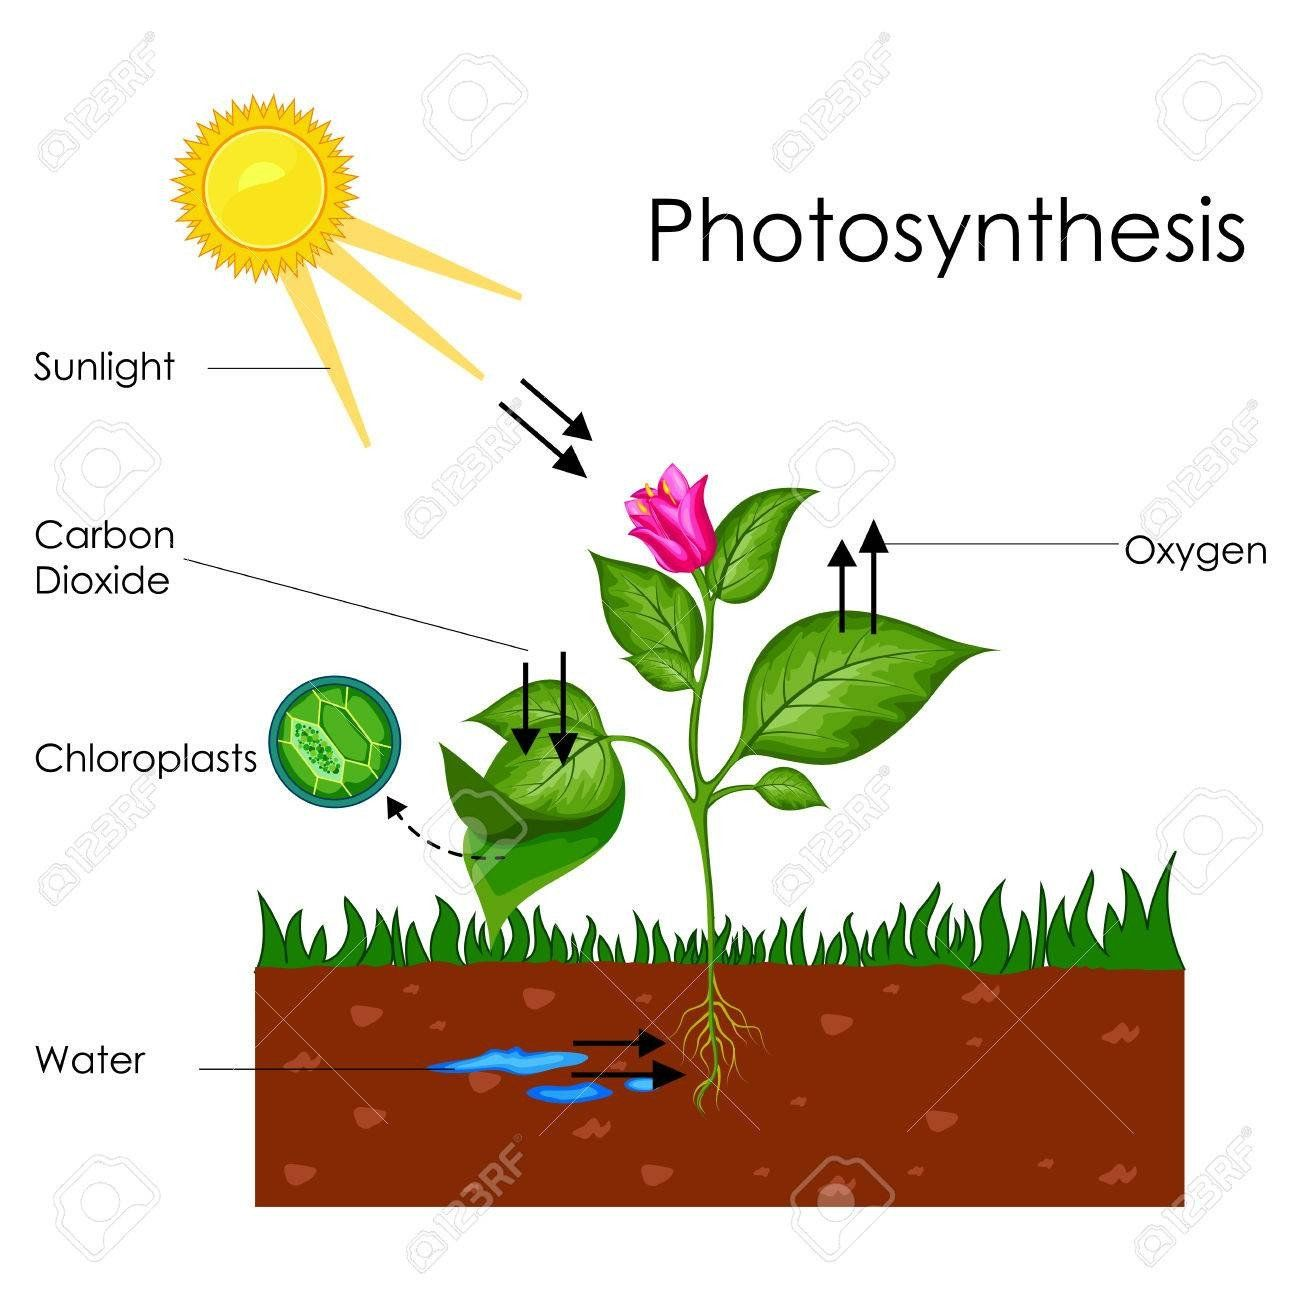 Photosynthesis Amp Cellular Respiration Worksheet Education Chart Of Biology For Photosynthesis Photosynthesis And Cellular Respiration Cellular Respiration [ 1300 x 1300 Pixel ]